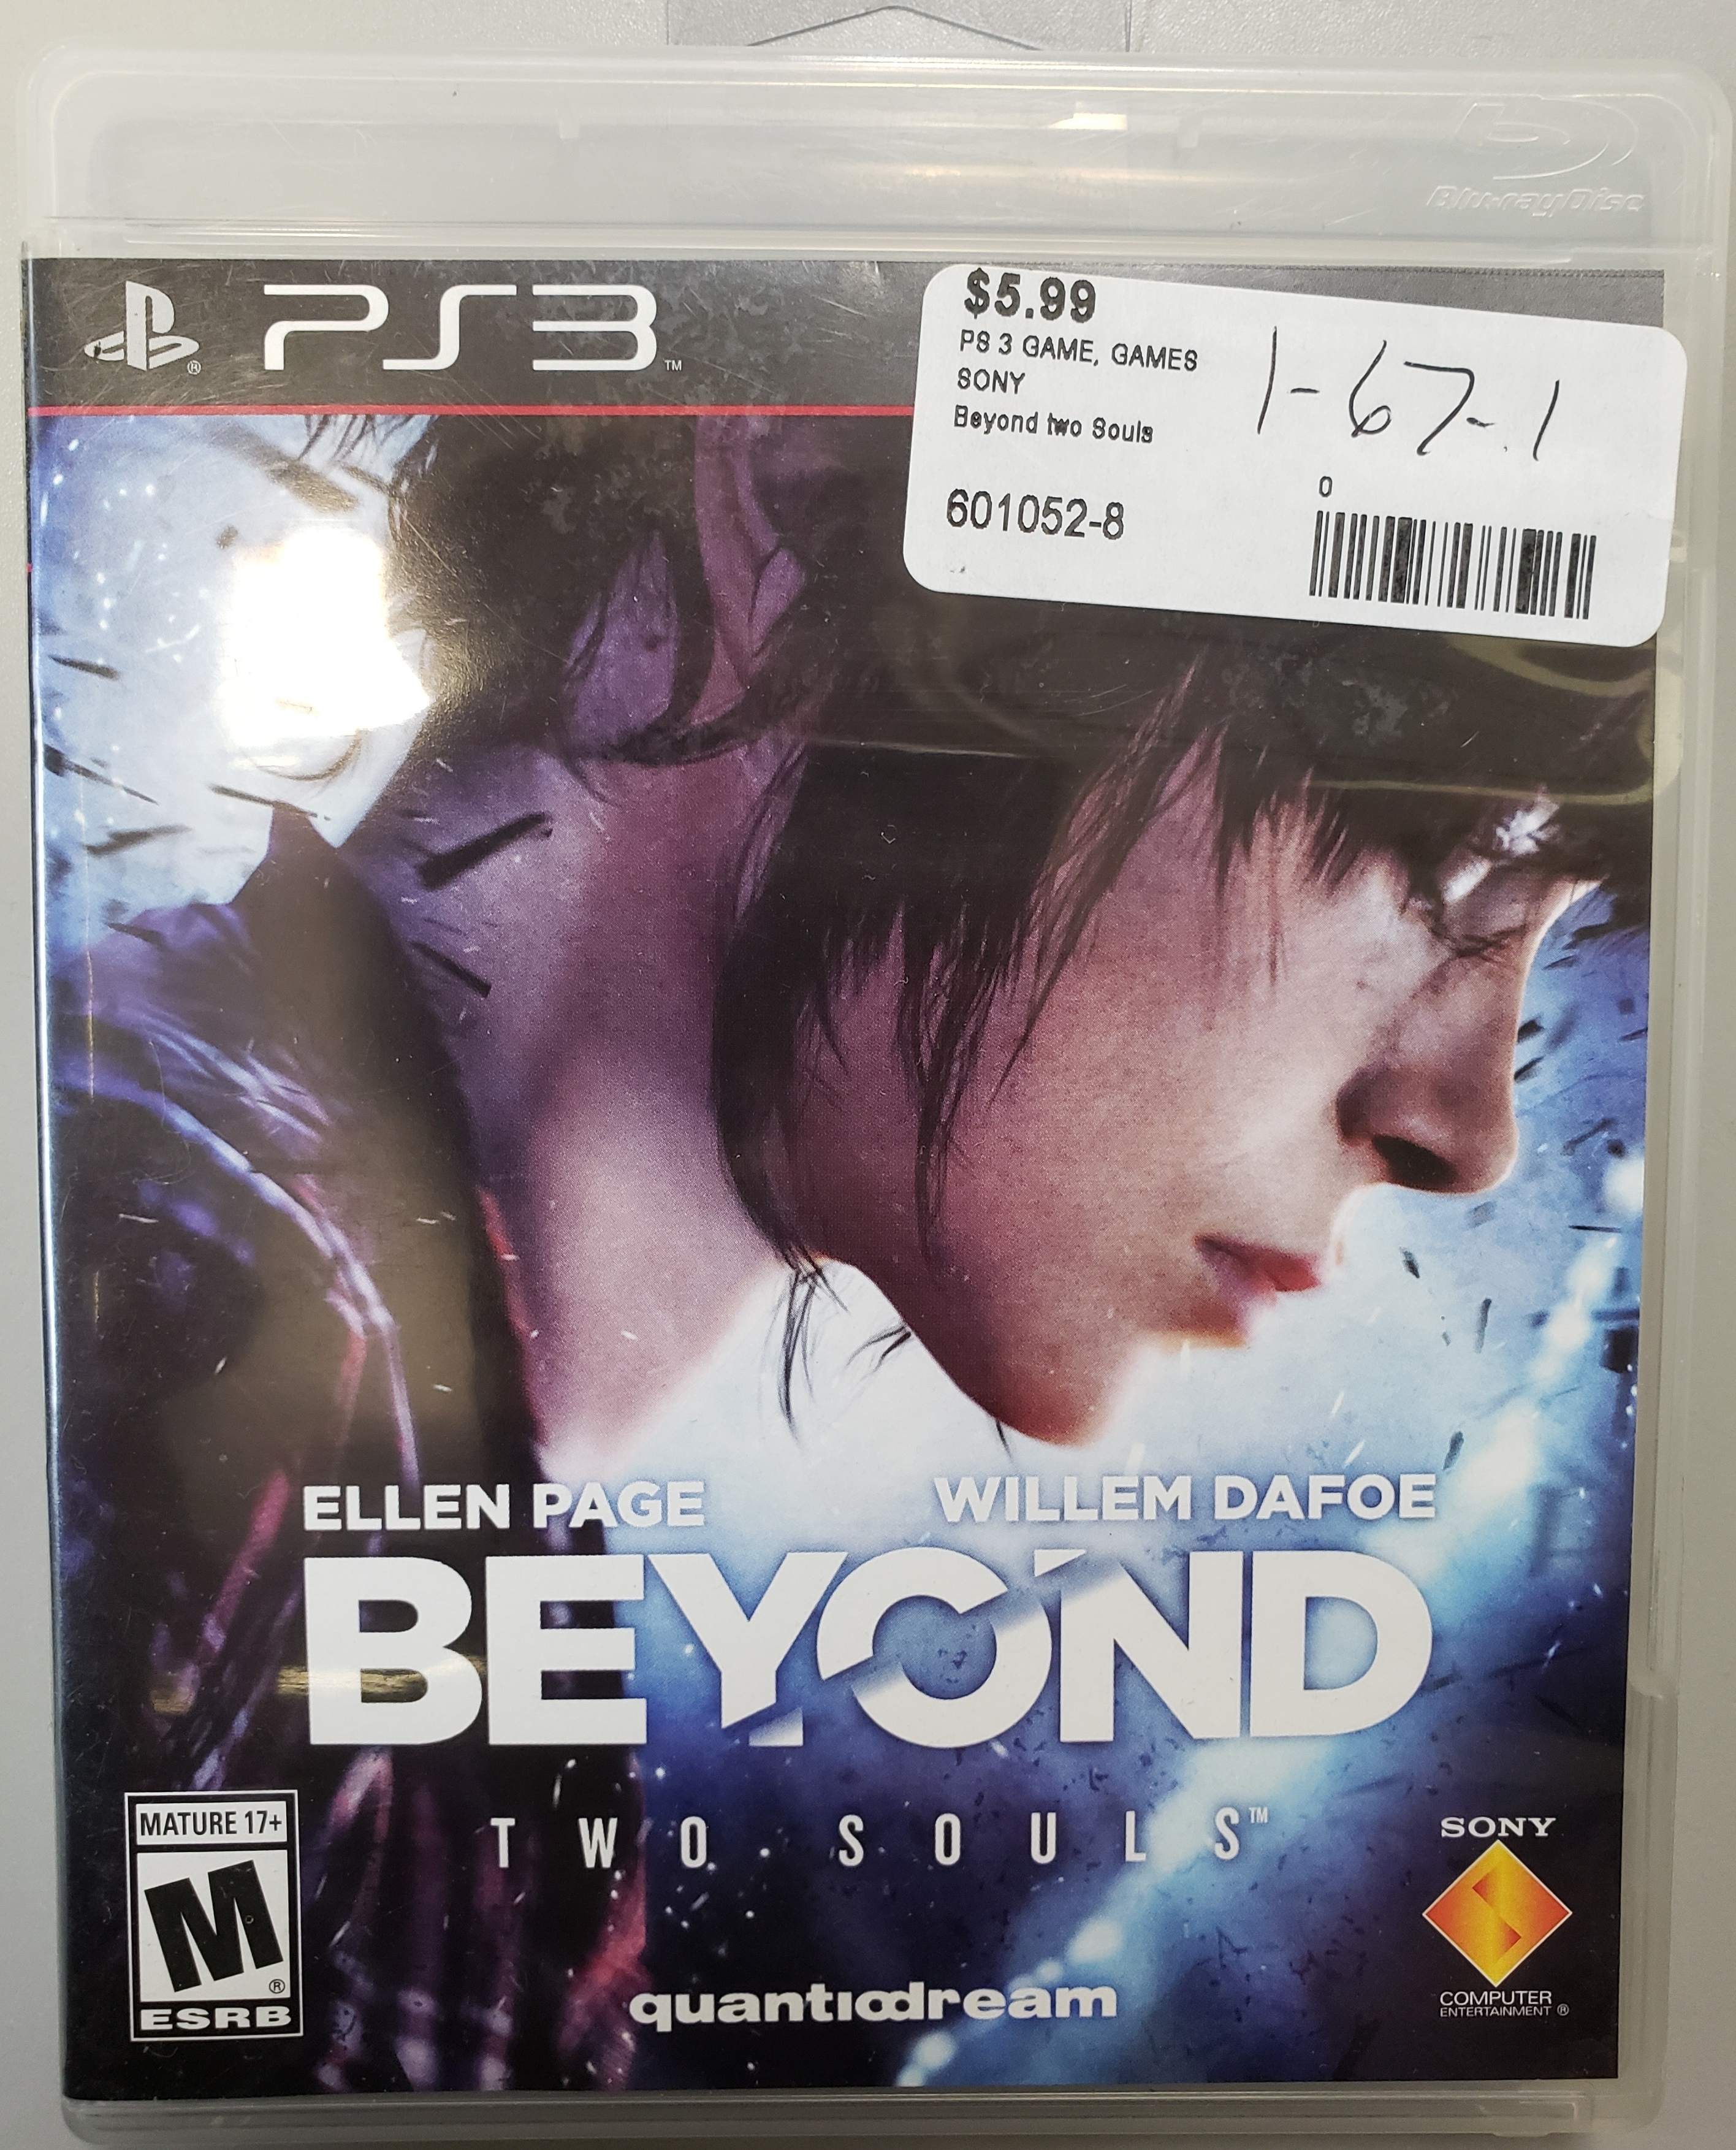 BEYOND TWO SOULS - PS3 GAME